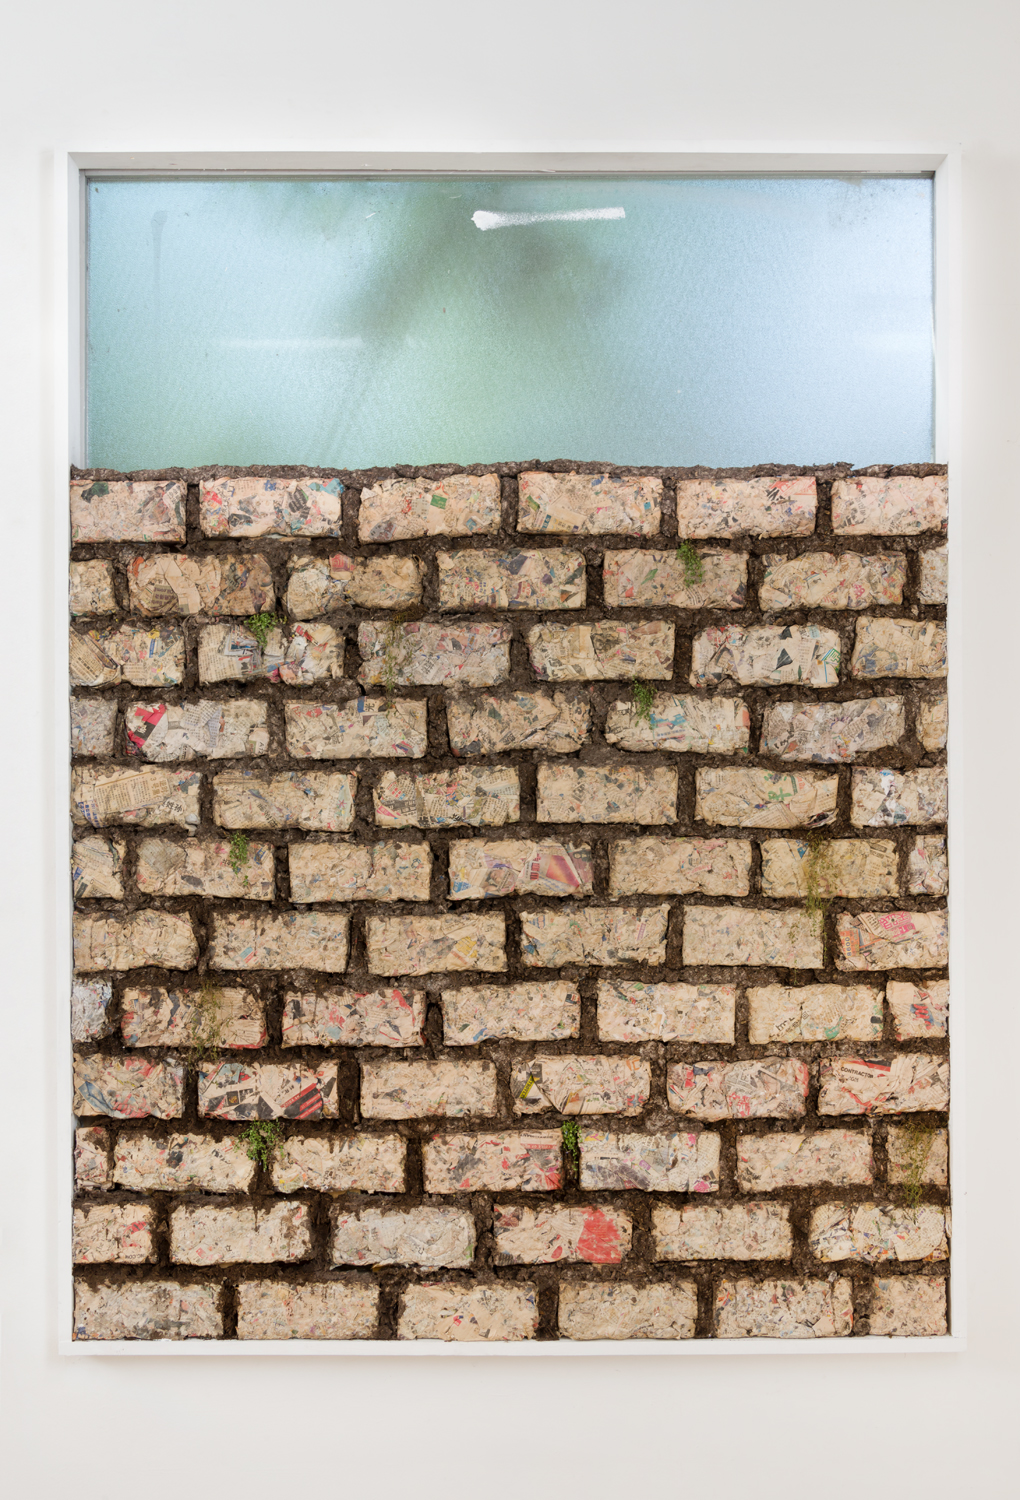 Bea Fremderman  Untitled (Brick Wall) , 2016 paper logs, soil, radish seedling 70 1⁄2 x 53 x 4 in.